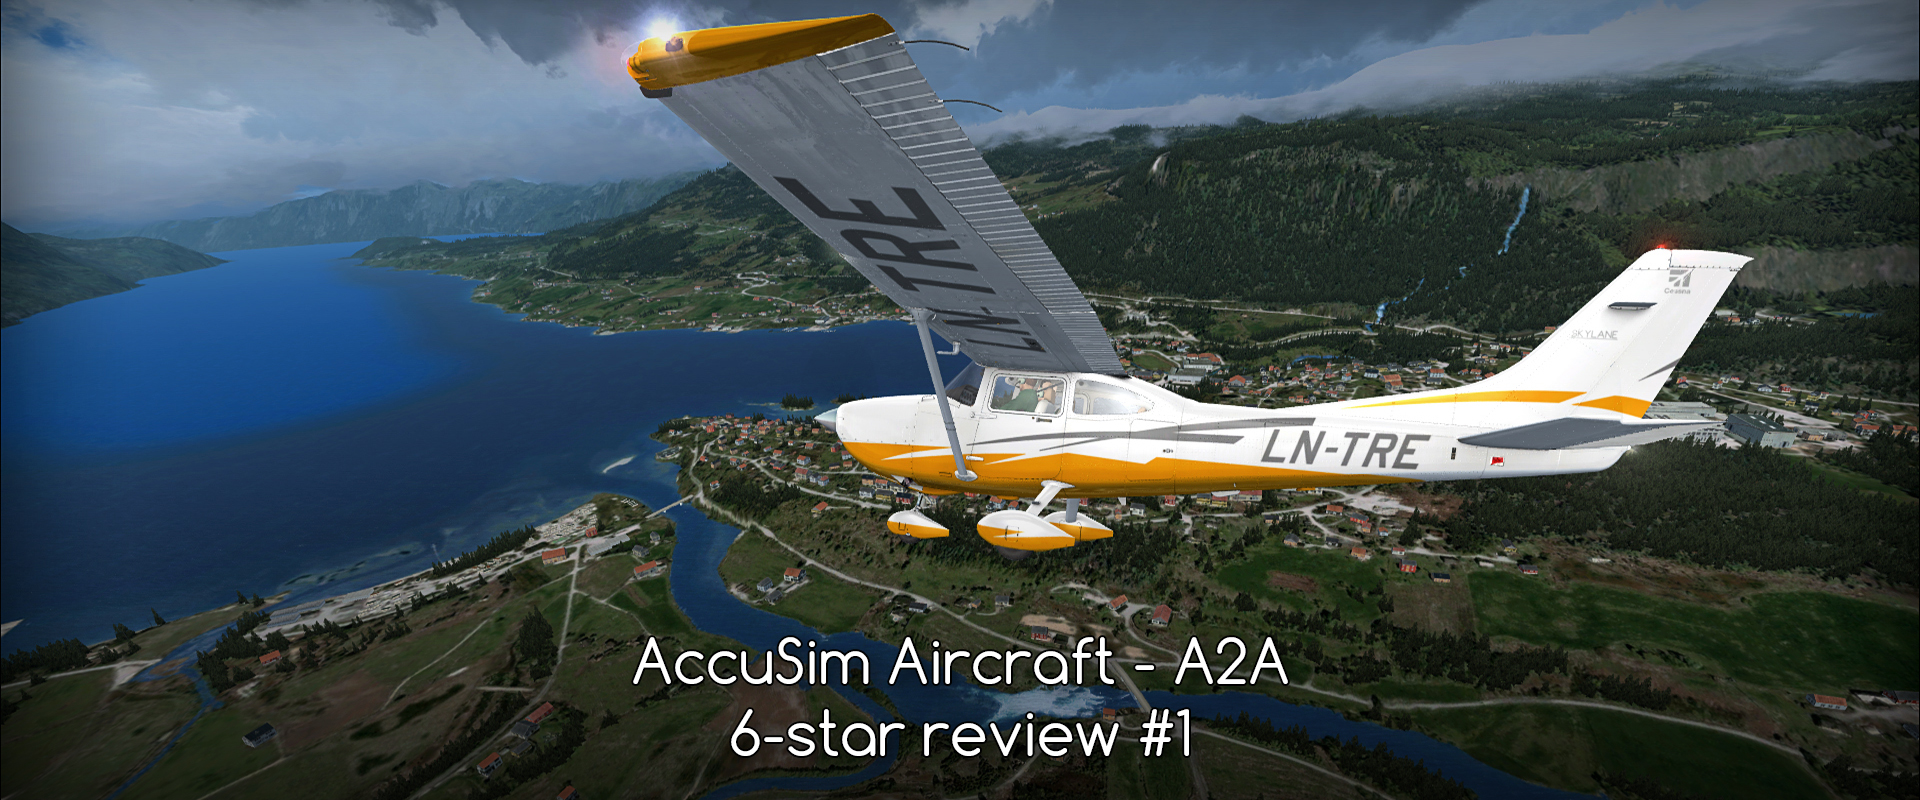 A2A – AccuSim GA aircraft – megareview (C172, C182, PA24) – #1